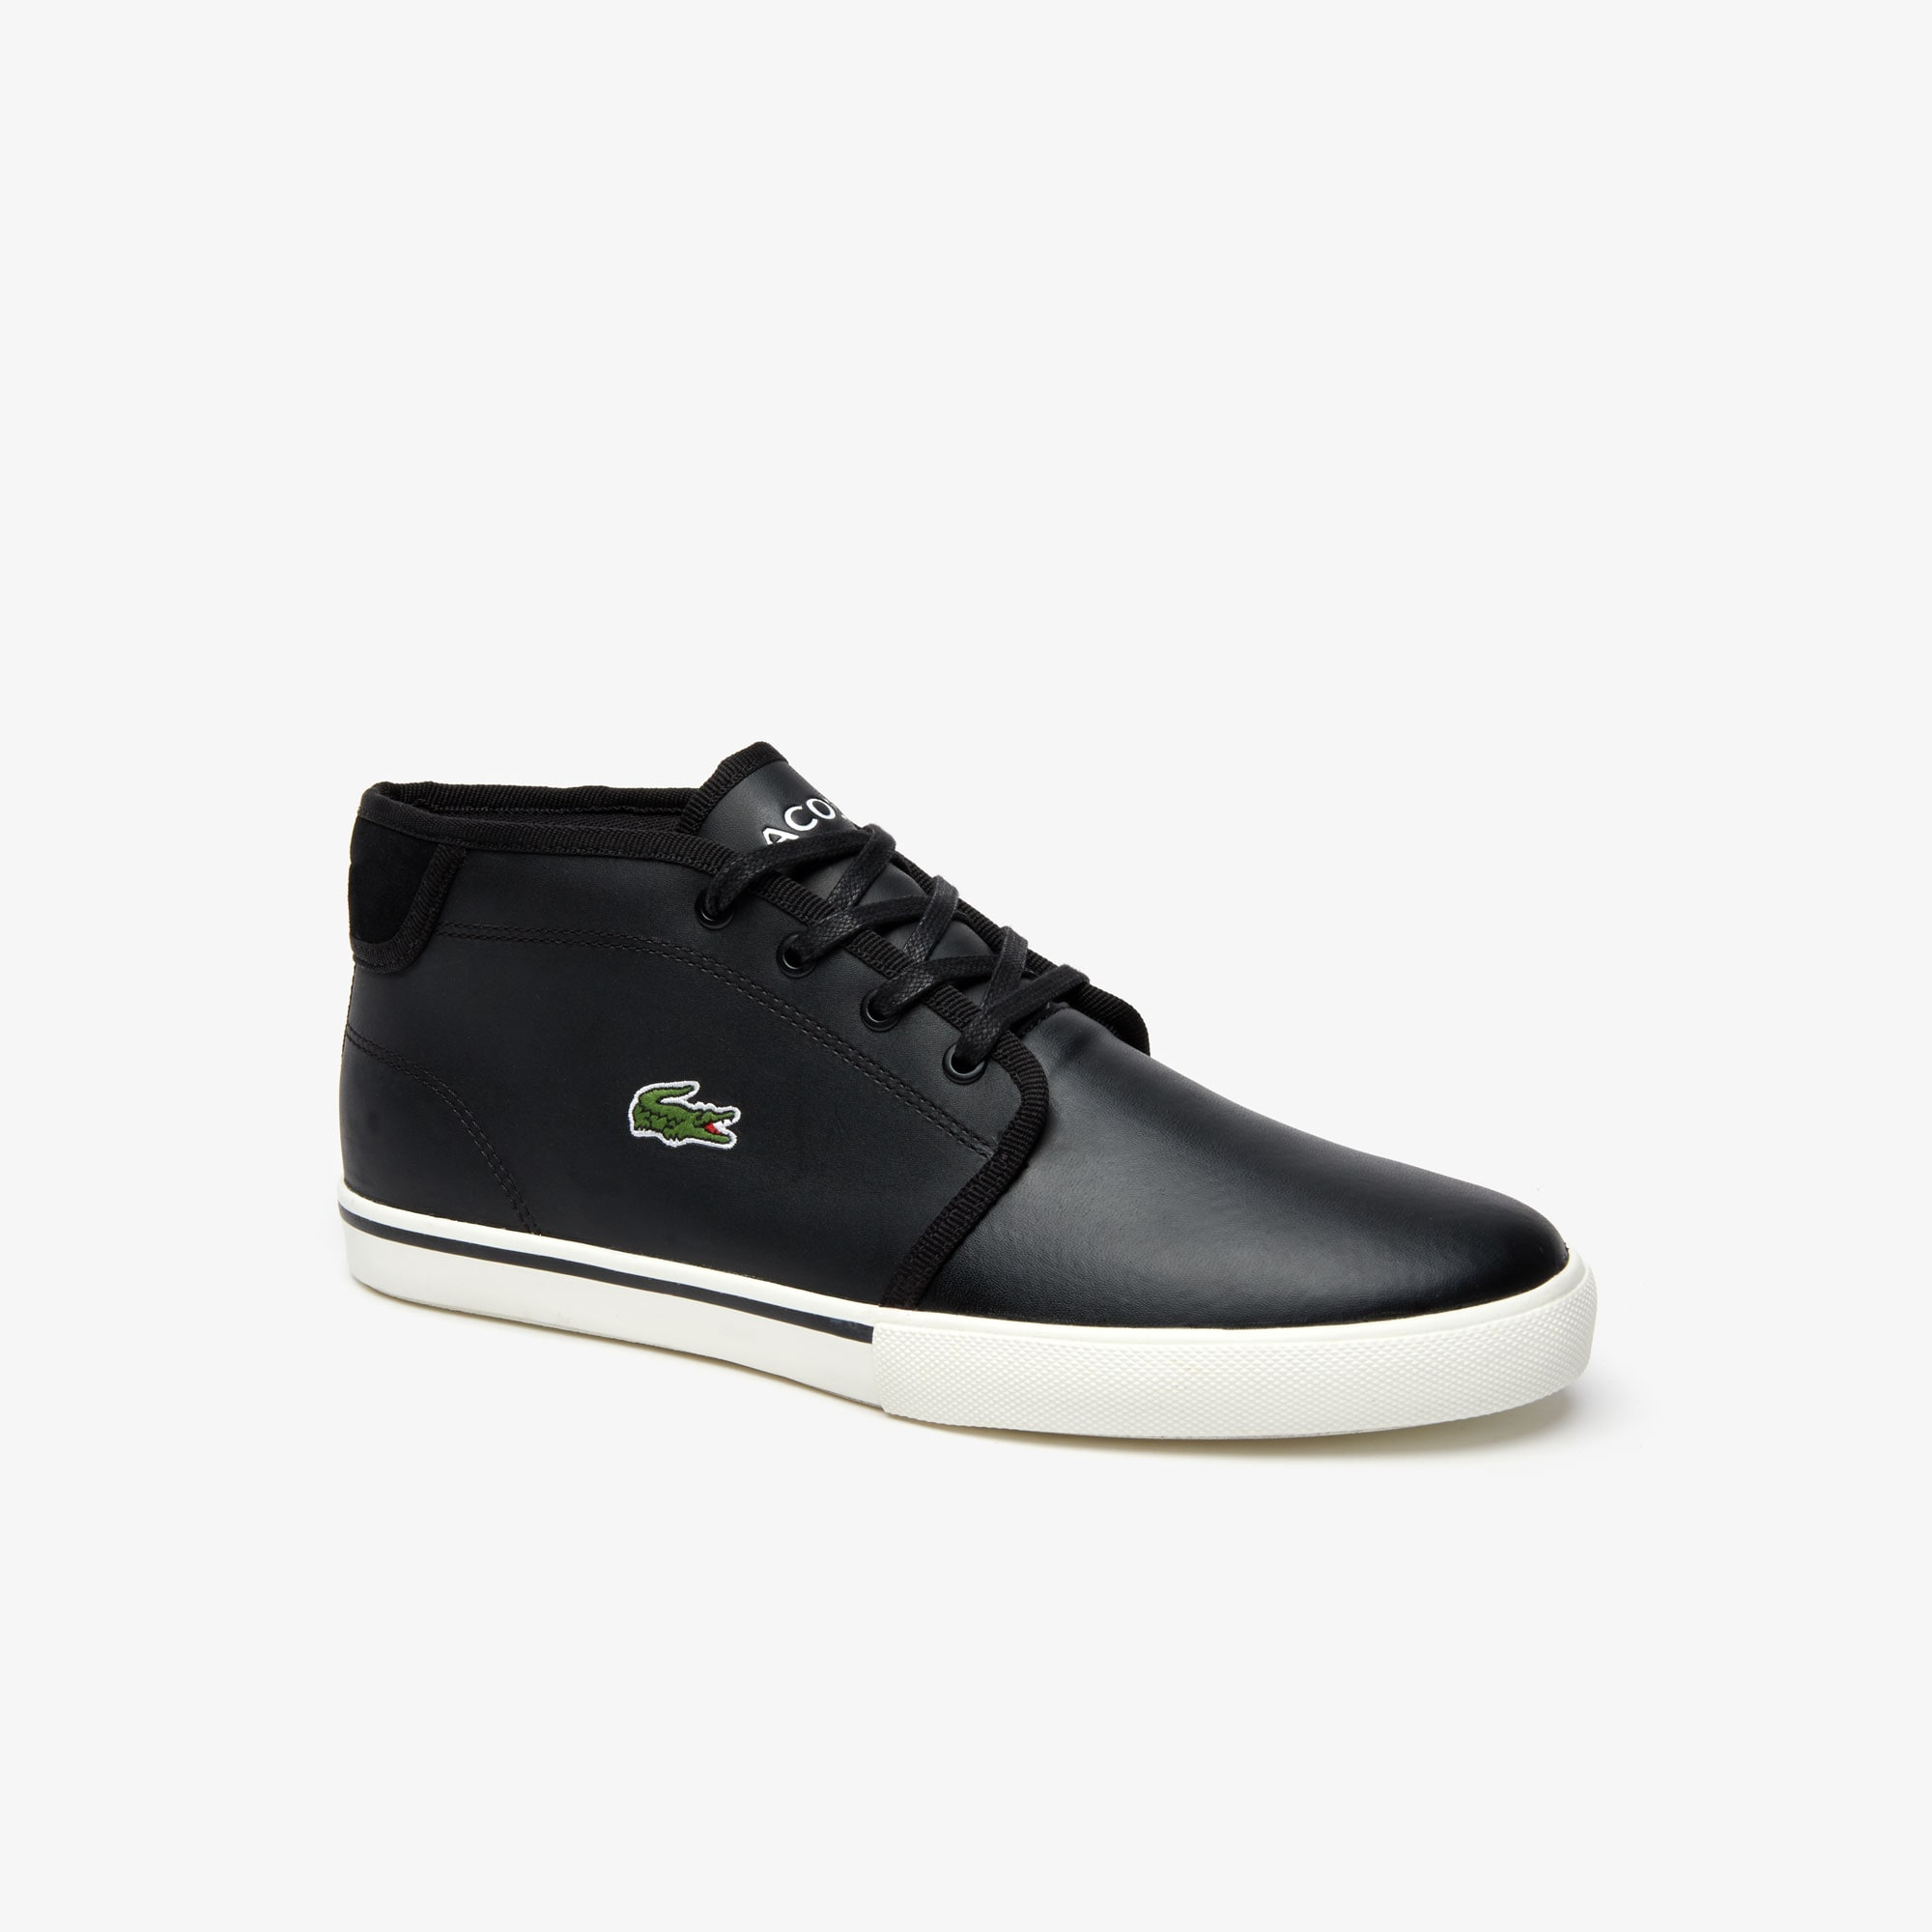 reputable site 78348 7dcd2 Men's Shoes | Shoes for Men | LACOSTE